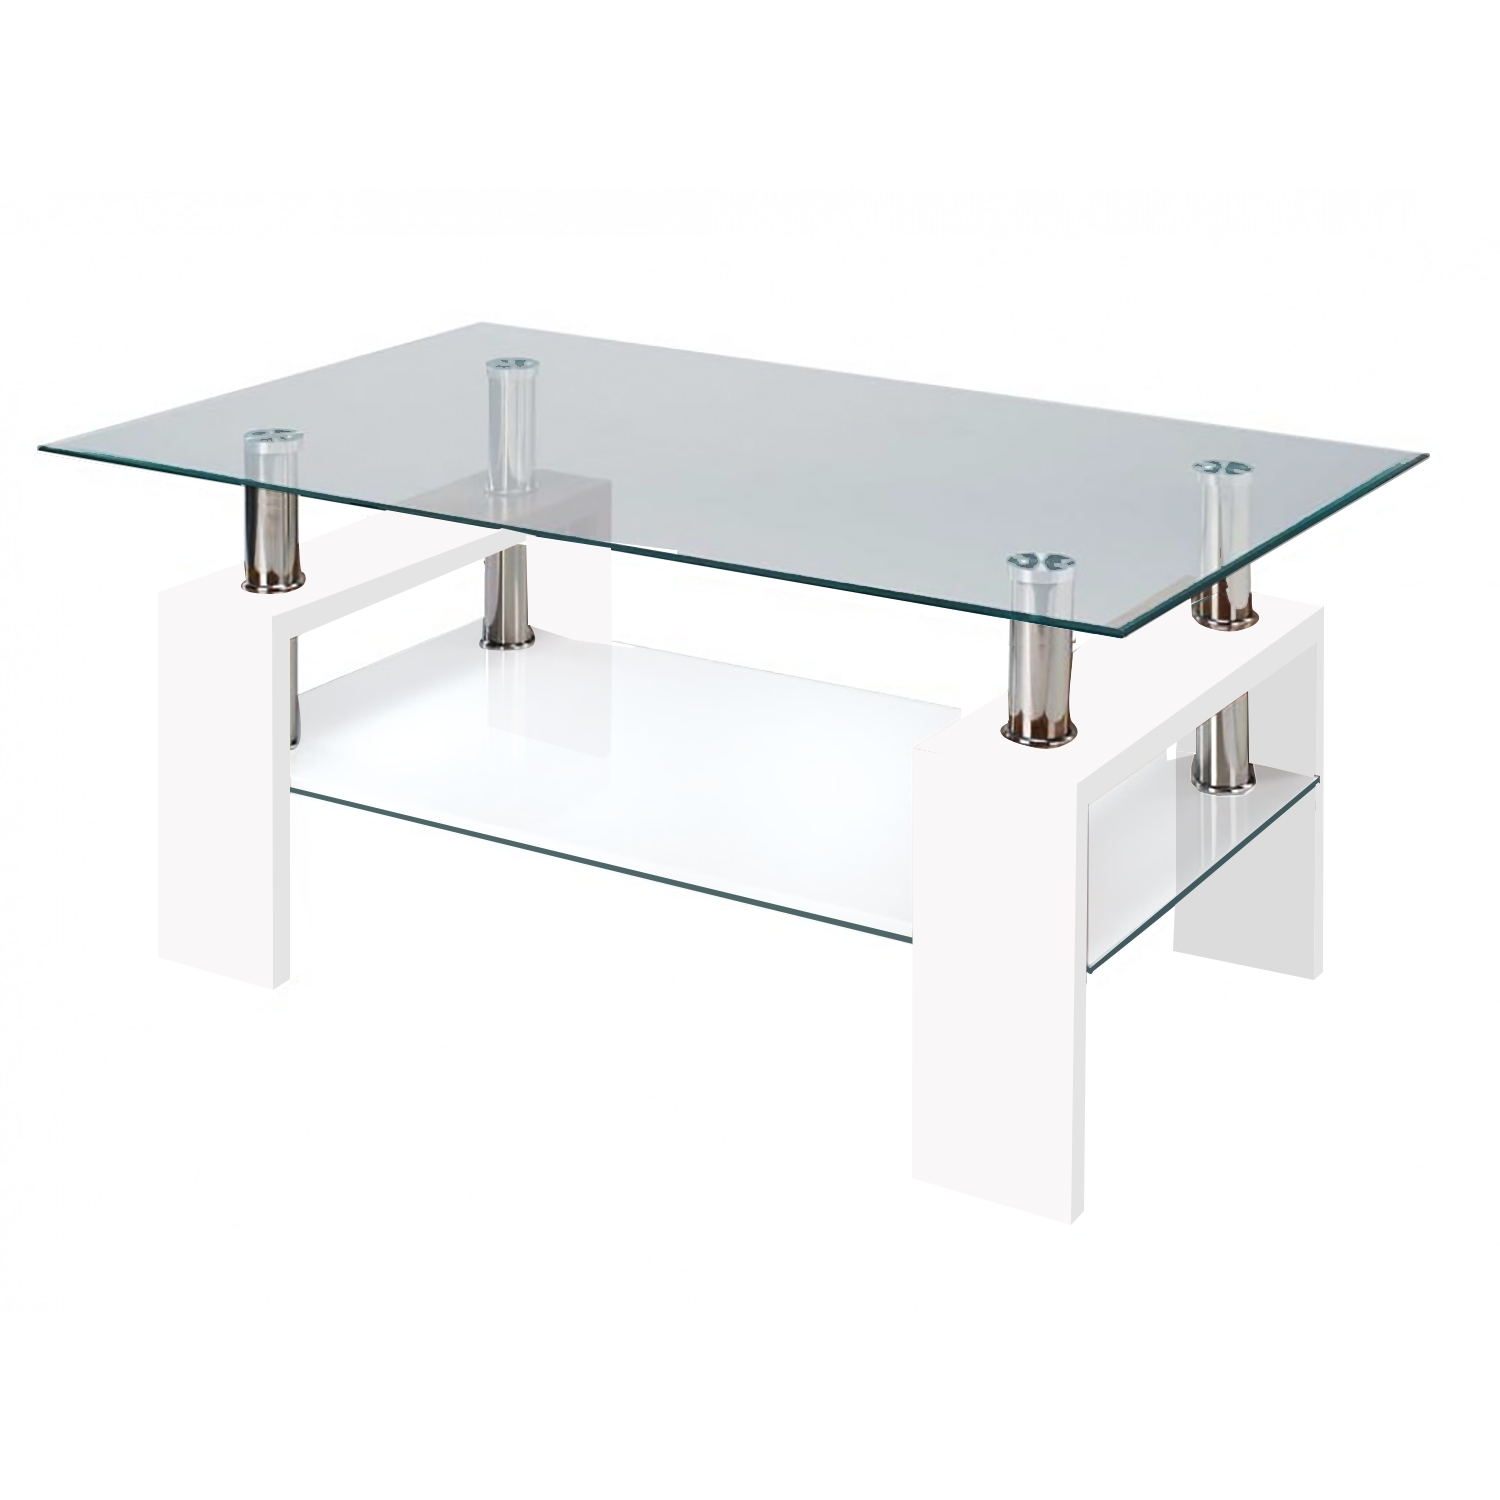 Modern Glass White Coffee Table With Shelf Contemporary pertaining to Glass Coffee Table With Shelf (Image 13 of 15)